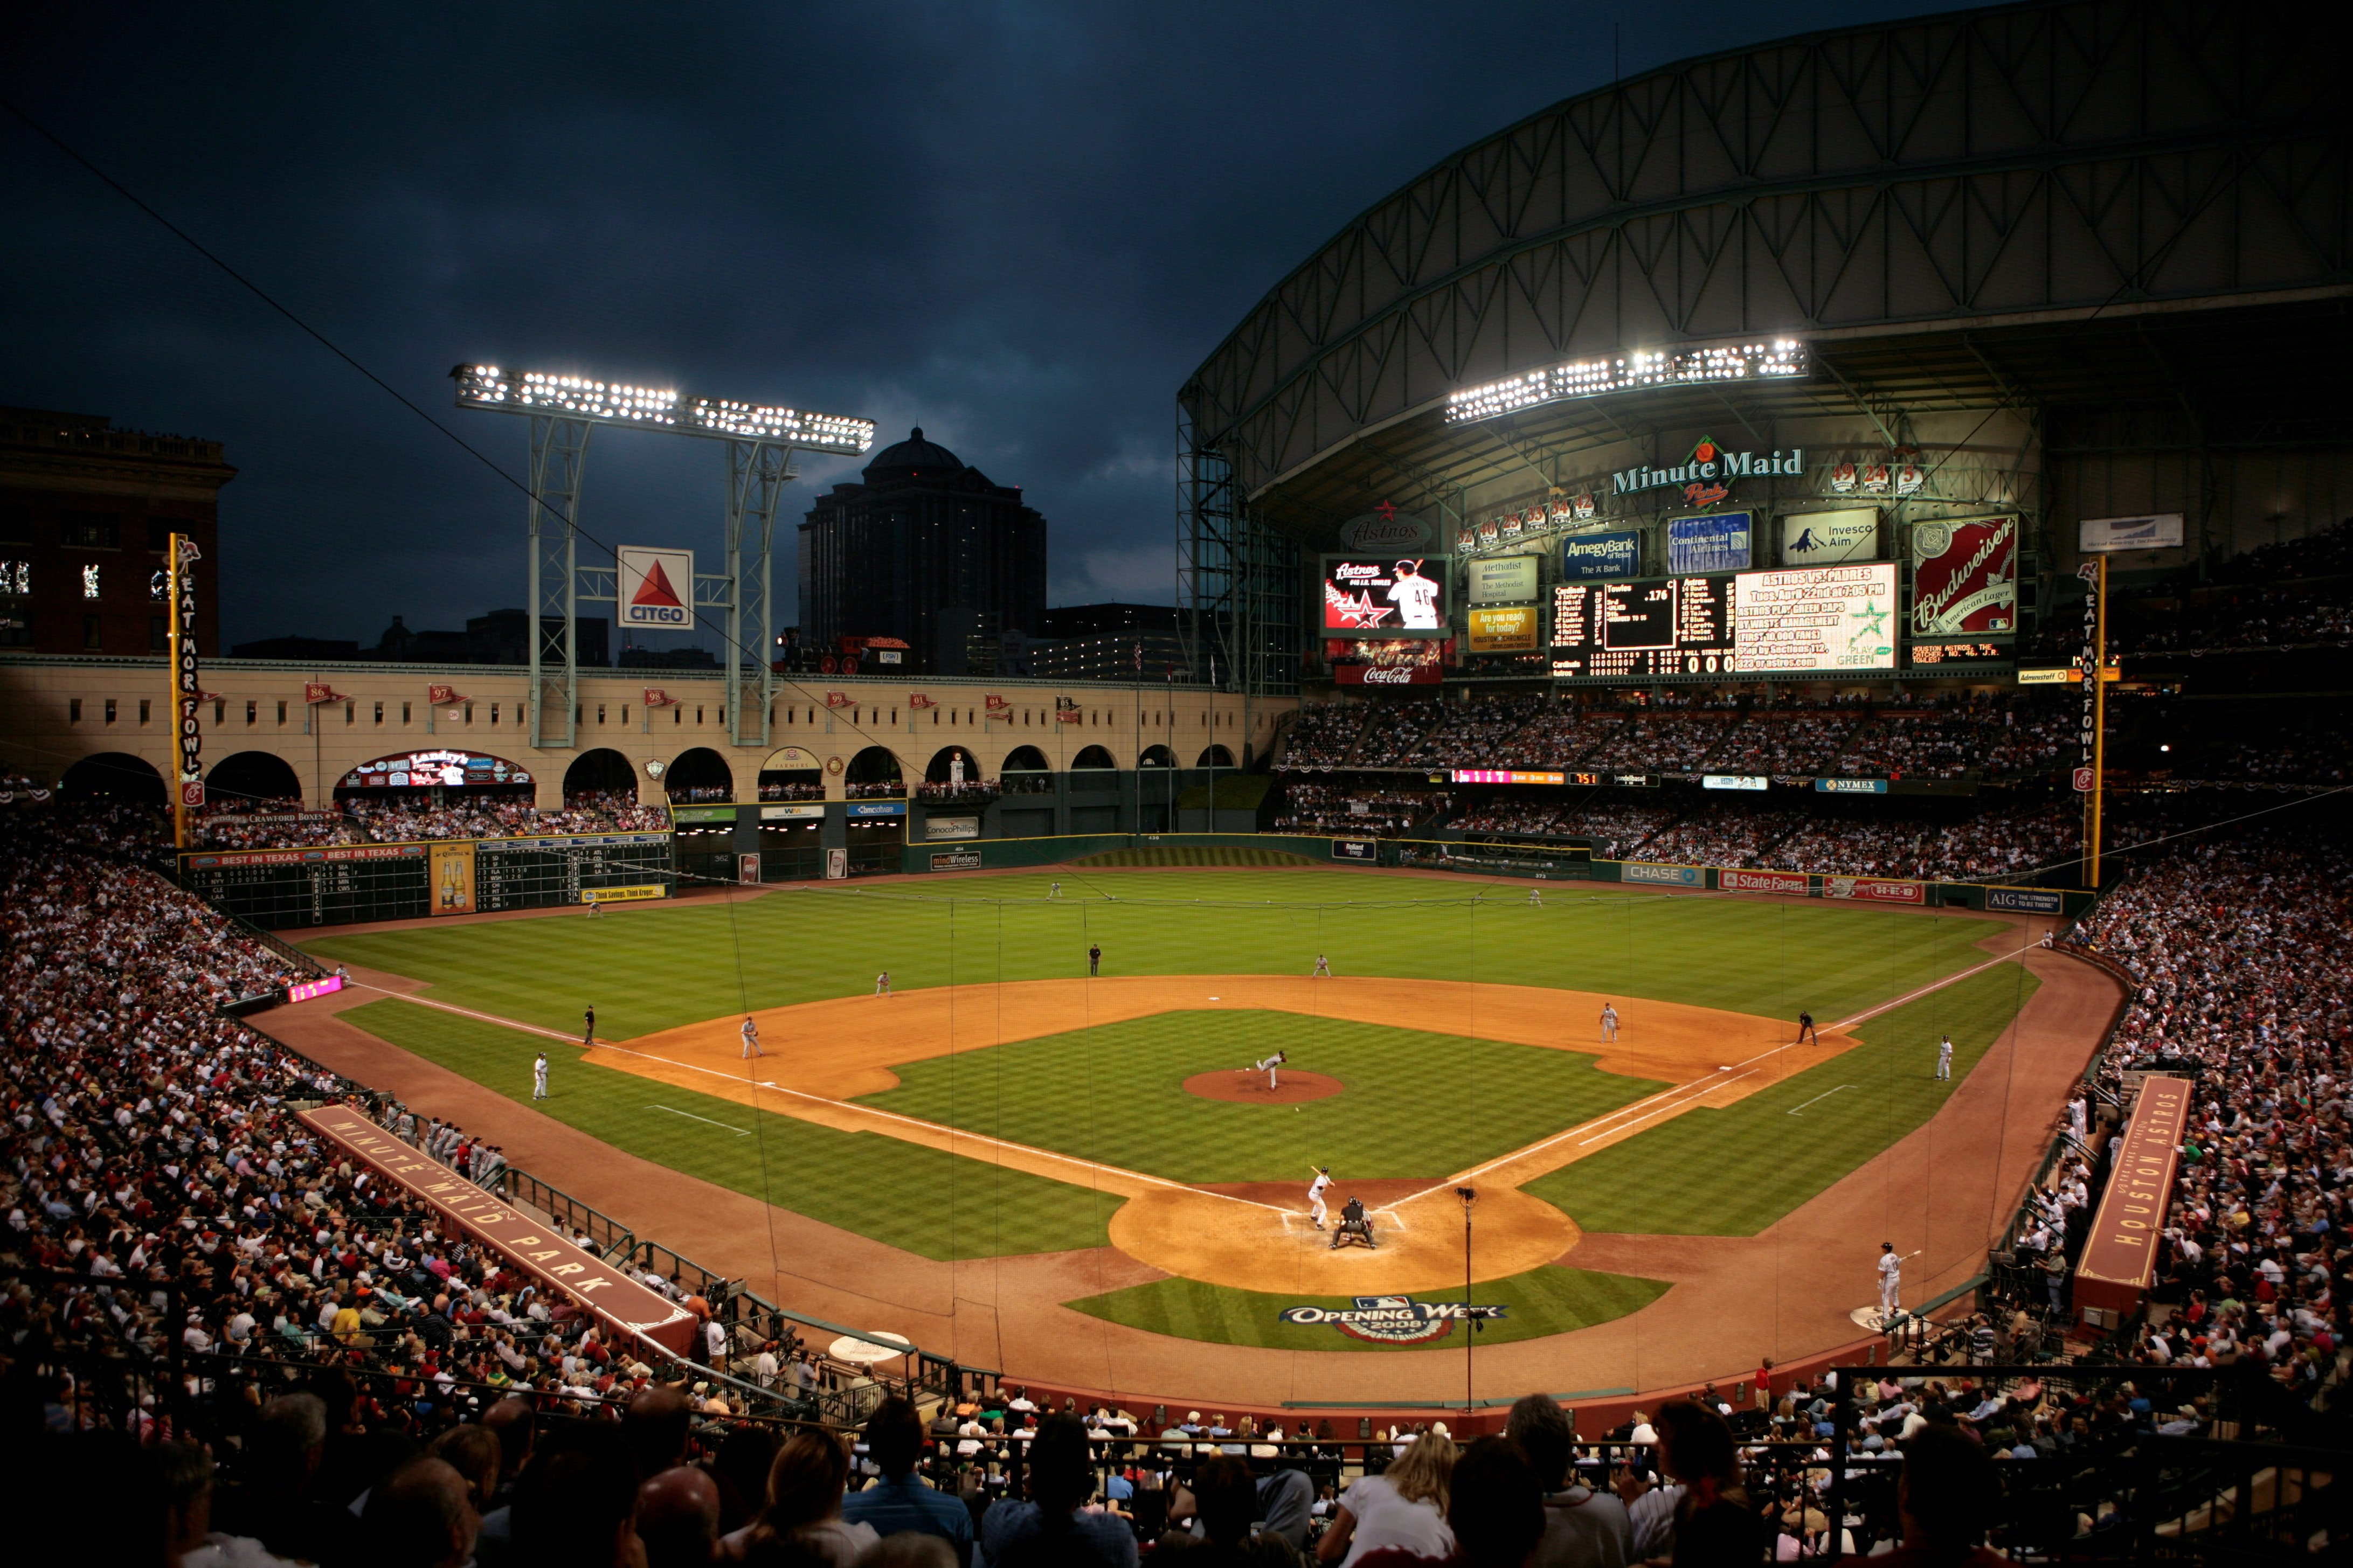 Minute Maid Park - best MLB stadiums 2013